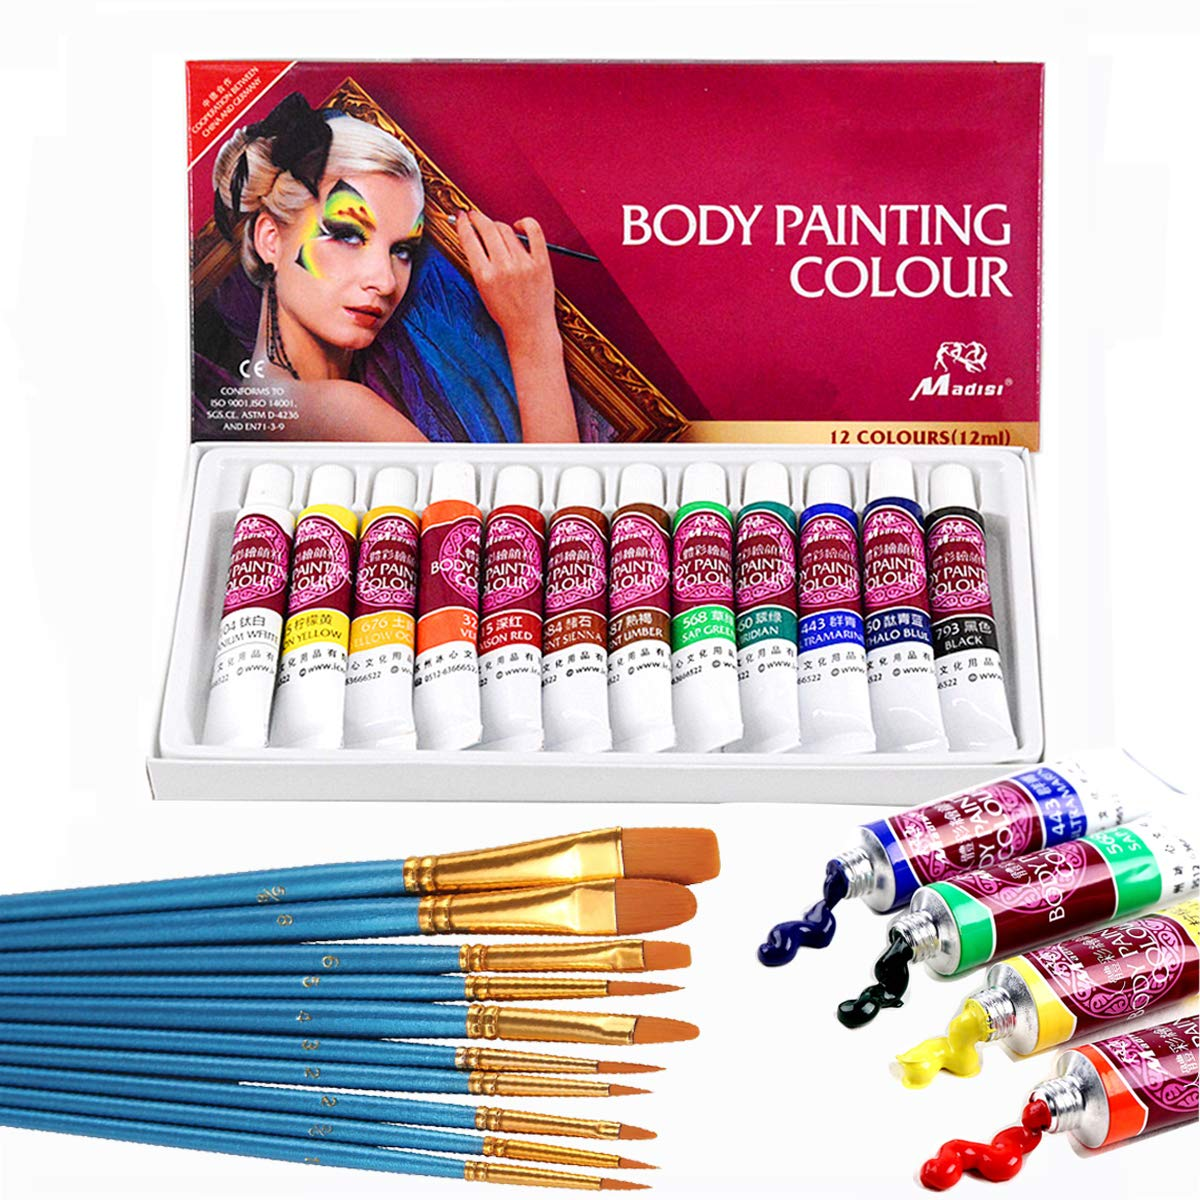 Face Paint Kit,12 Colors Professional Face Painting Tubes, Non-Toxic & Hypoallergenic Body Paint Halloween Makeup, Rich Pigment, Face Painting Kits with 10Pieces Round Pointed Tip Nylon Hair Brush VVLife